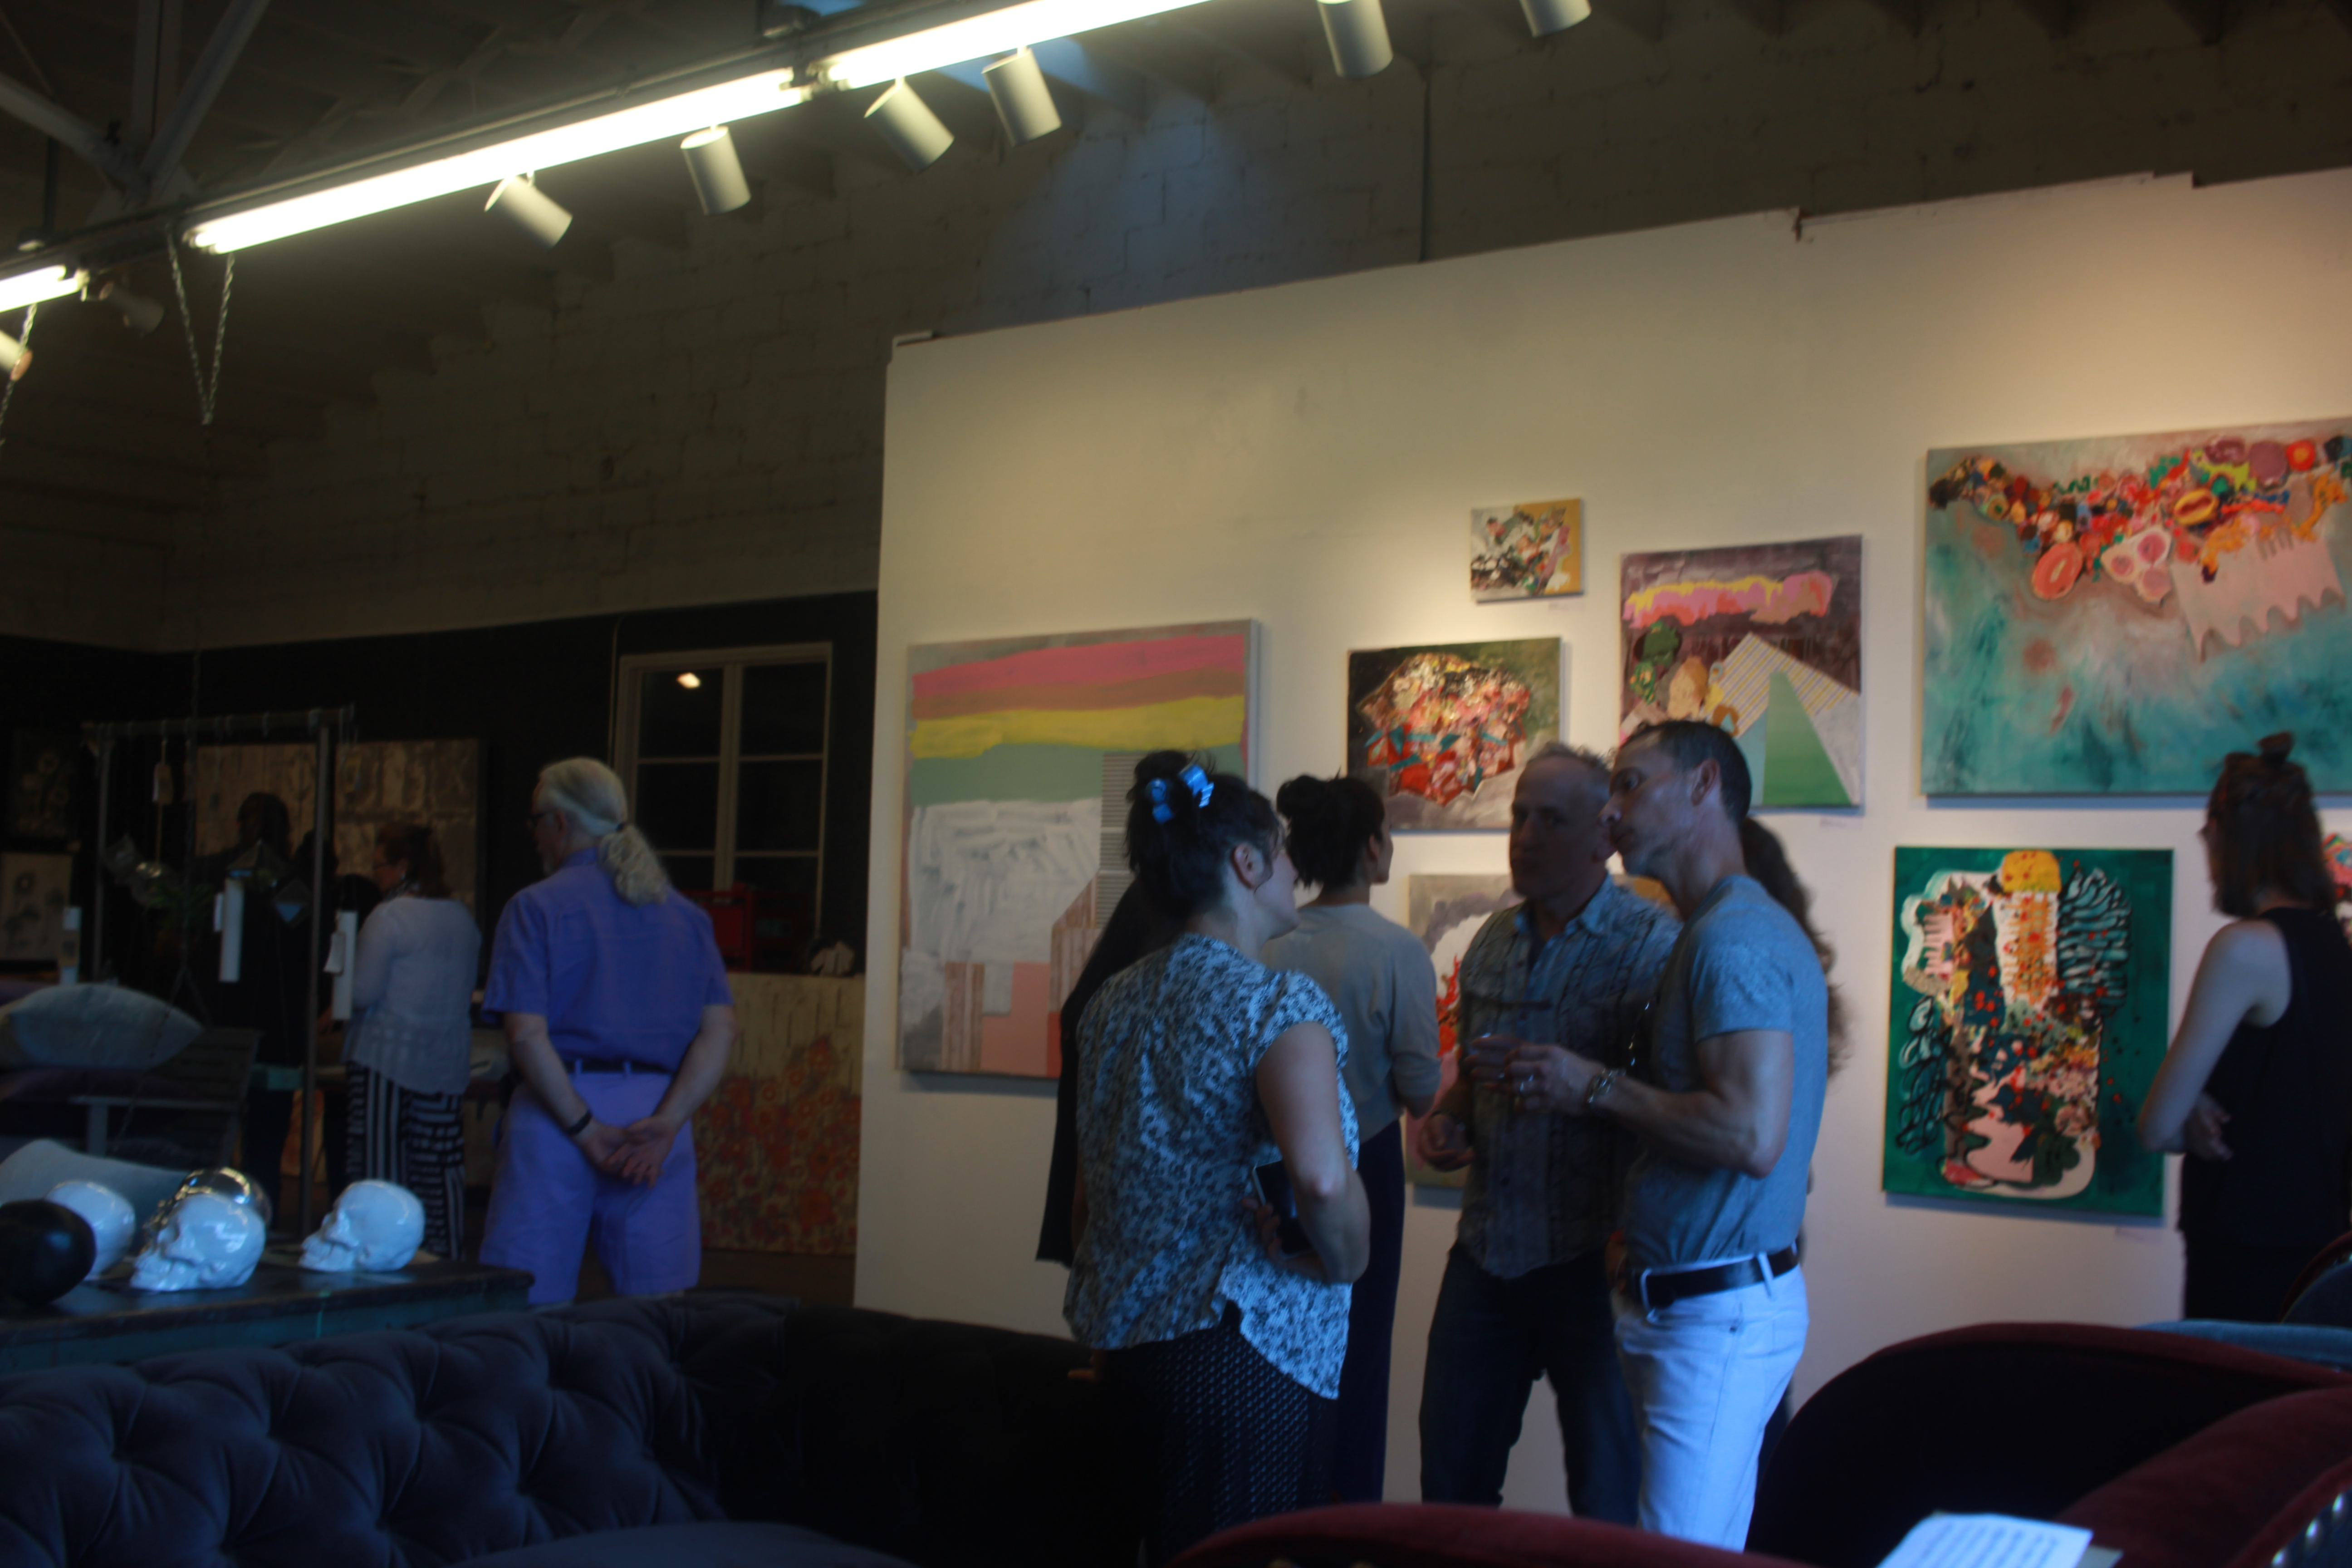 uests chat at the gallery opening of Ursula Gullow's exhibit 'Confetti' on June 10th at London District Studios.